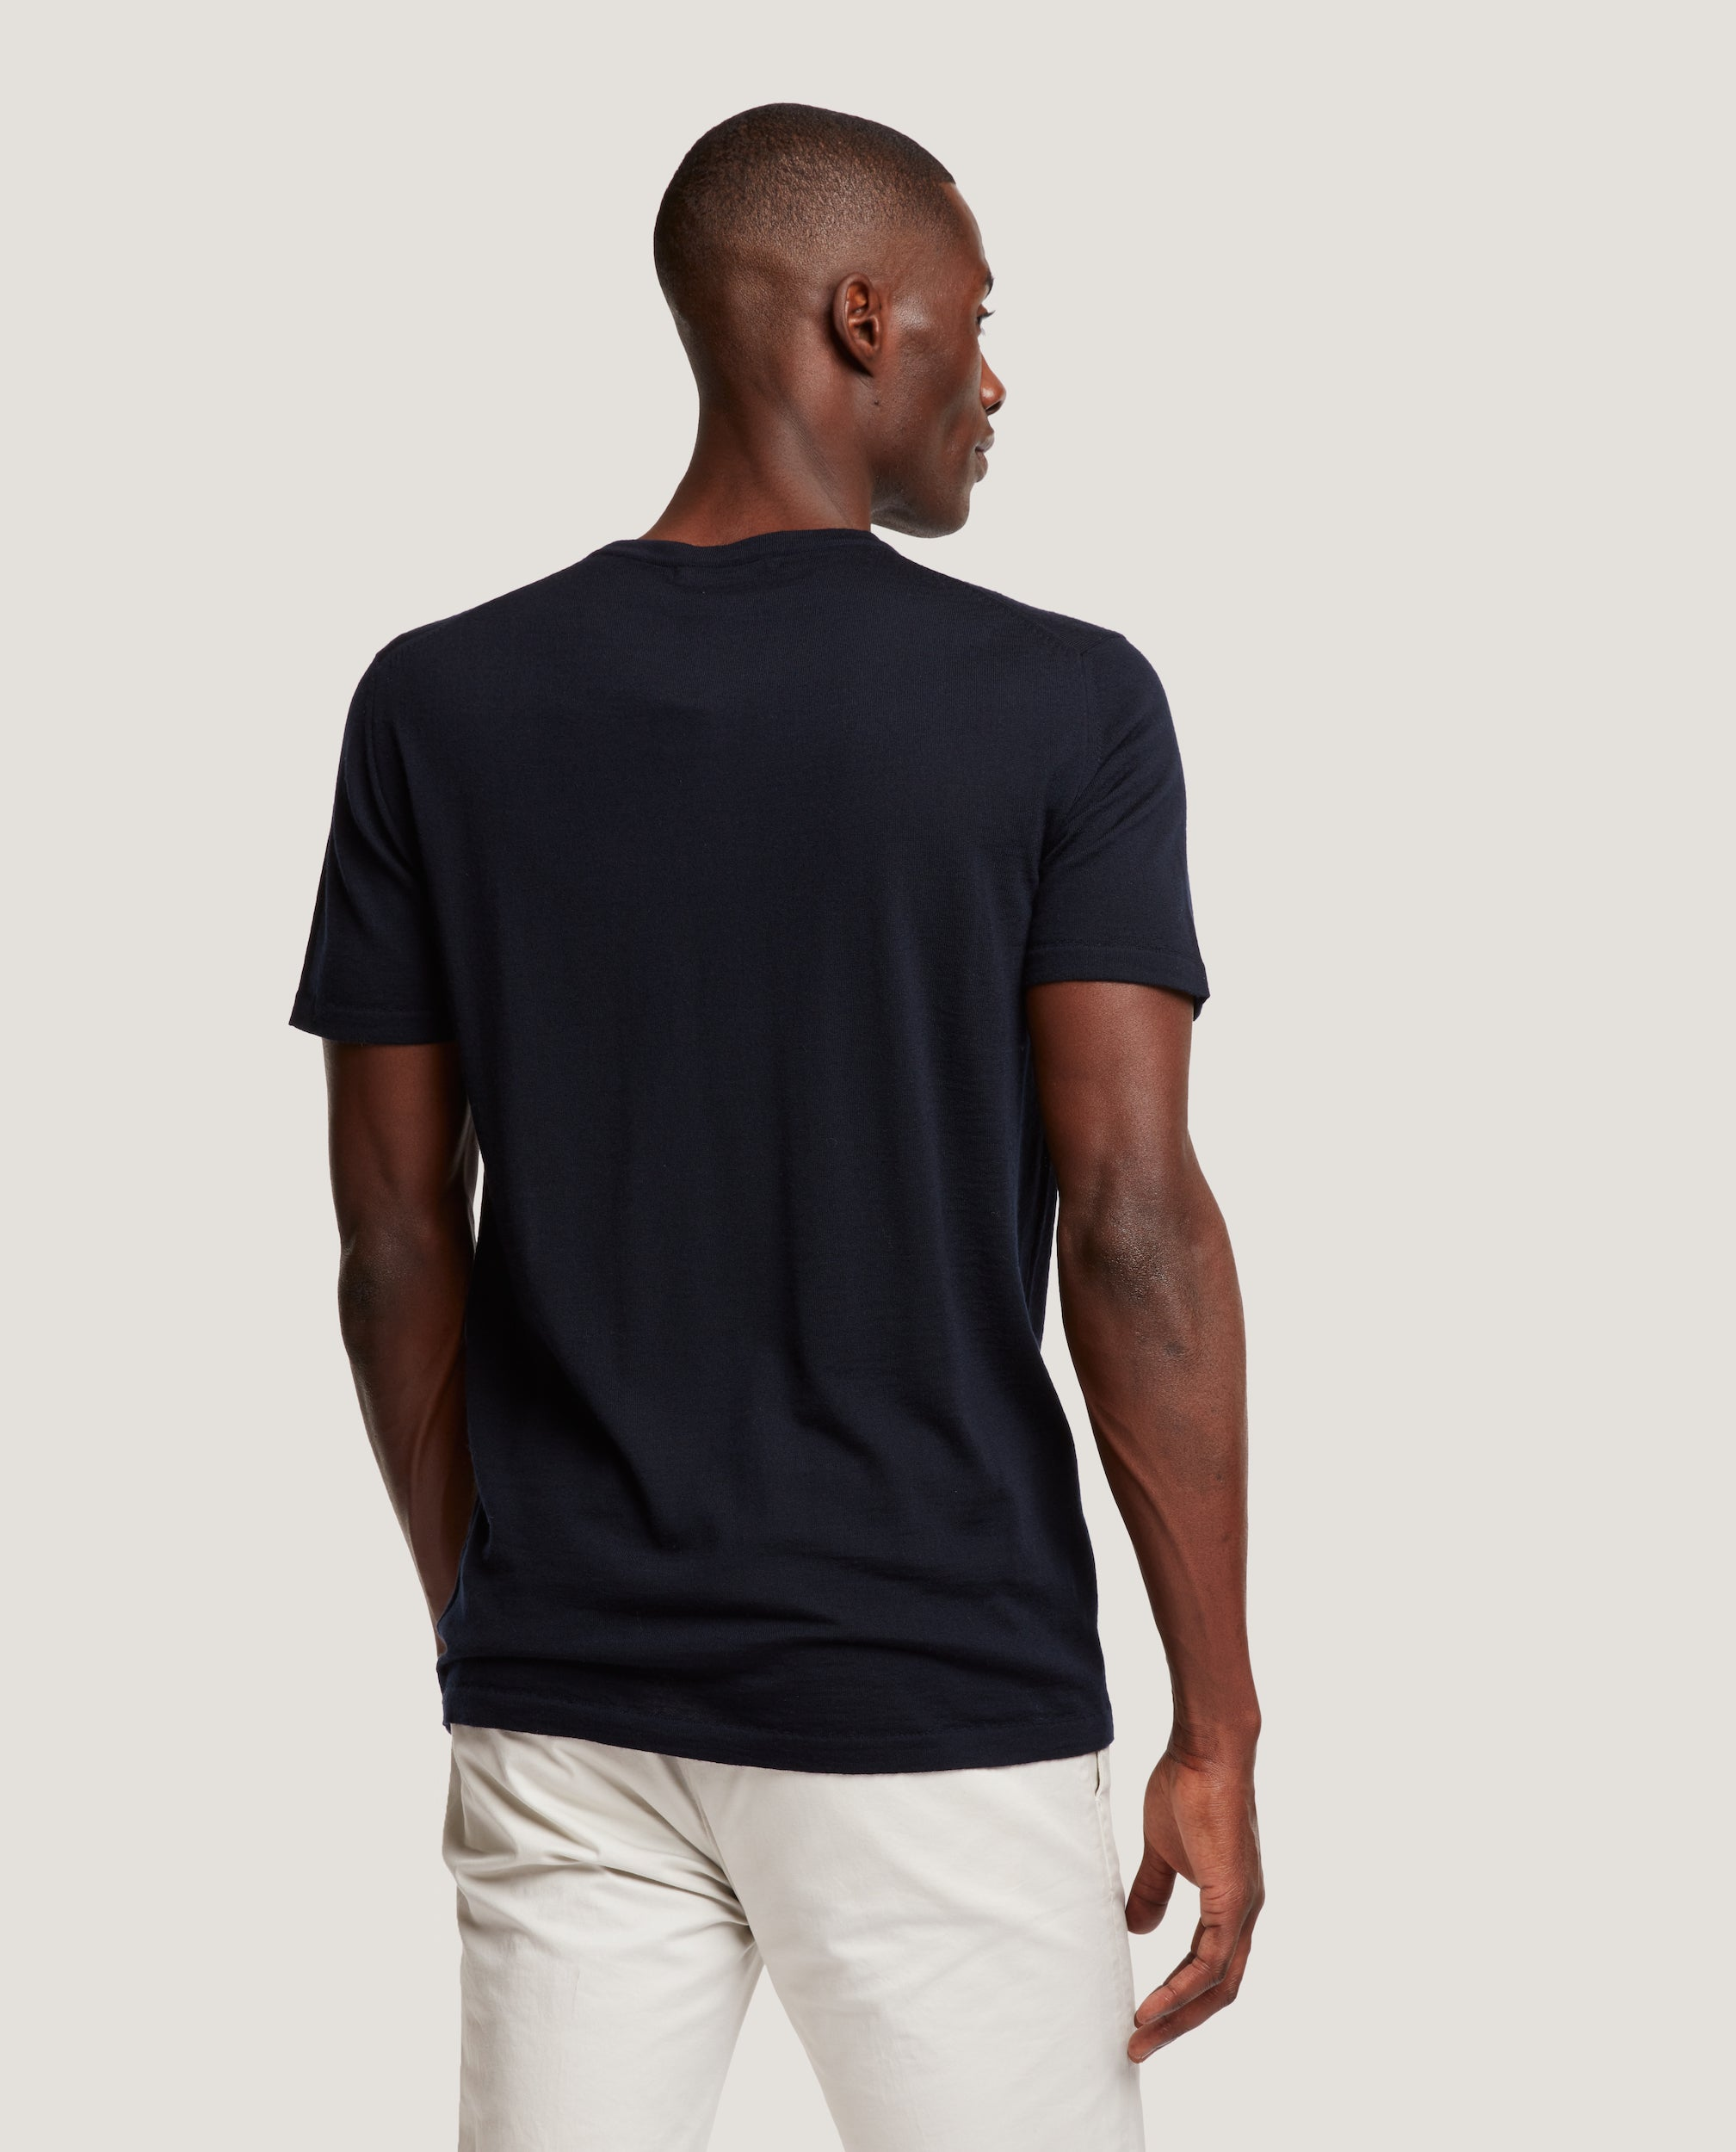 SIMON Cashmere blend knit crewneck short sleeve | Night blue